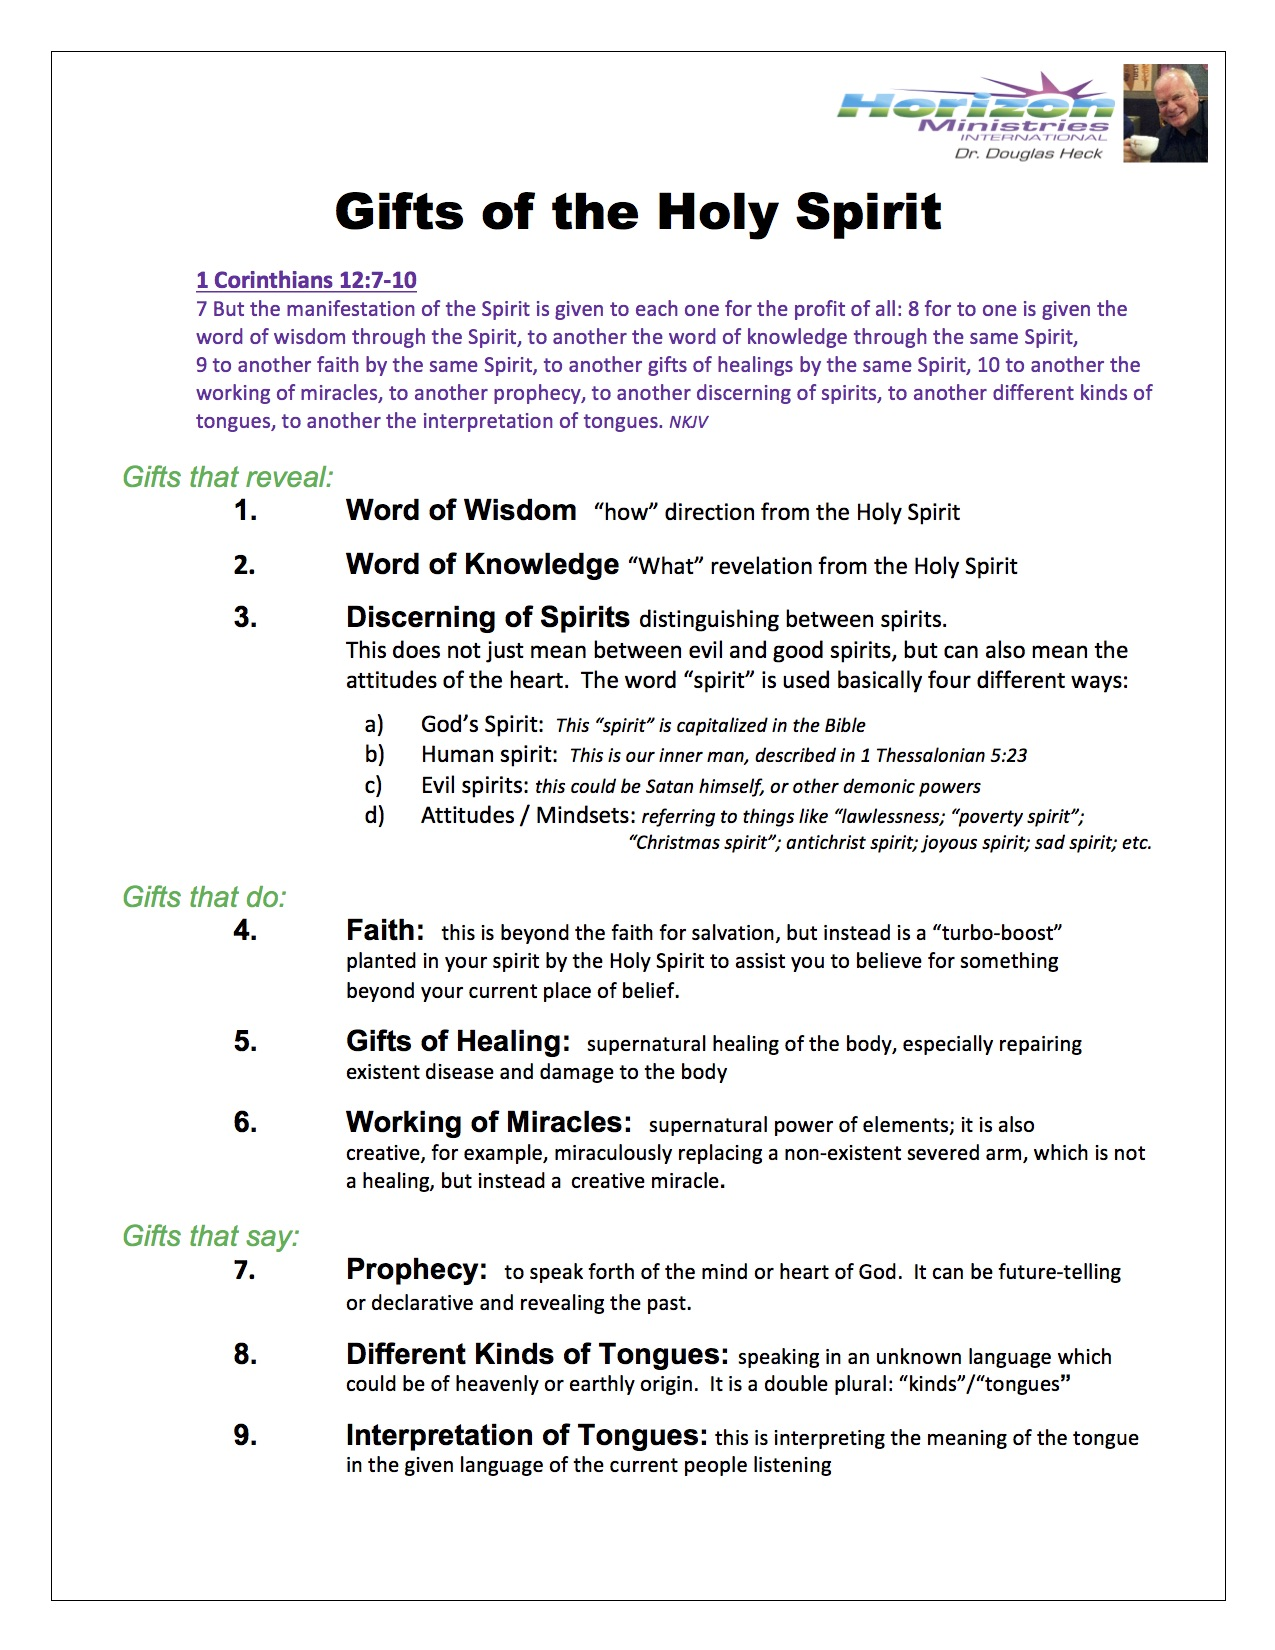 Gifts of the Holy Spirt